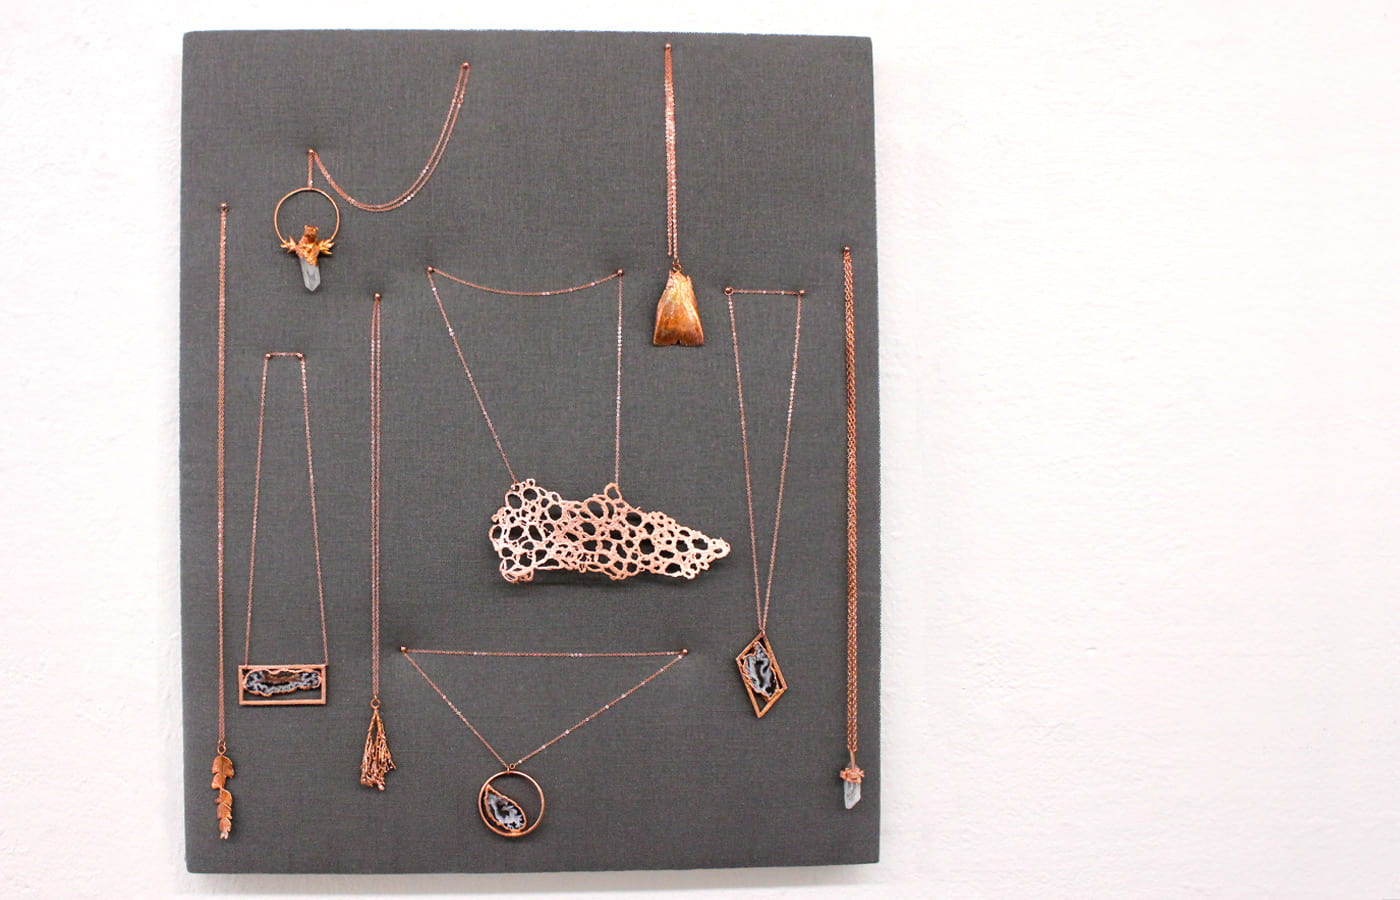 Display of brass electroform jewelry created by SJSU students.